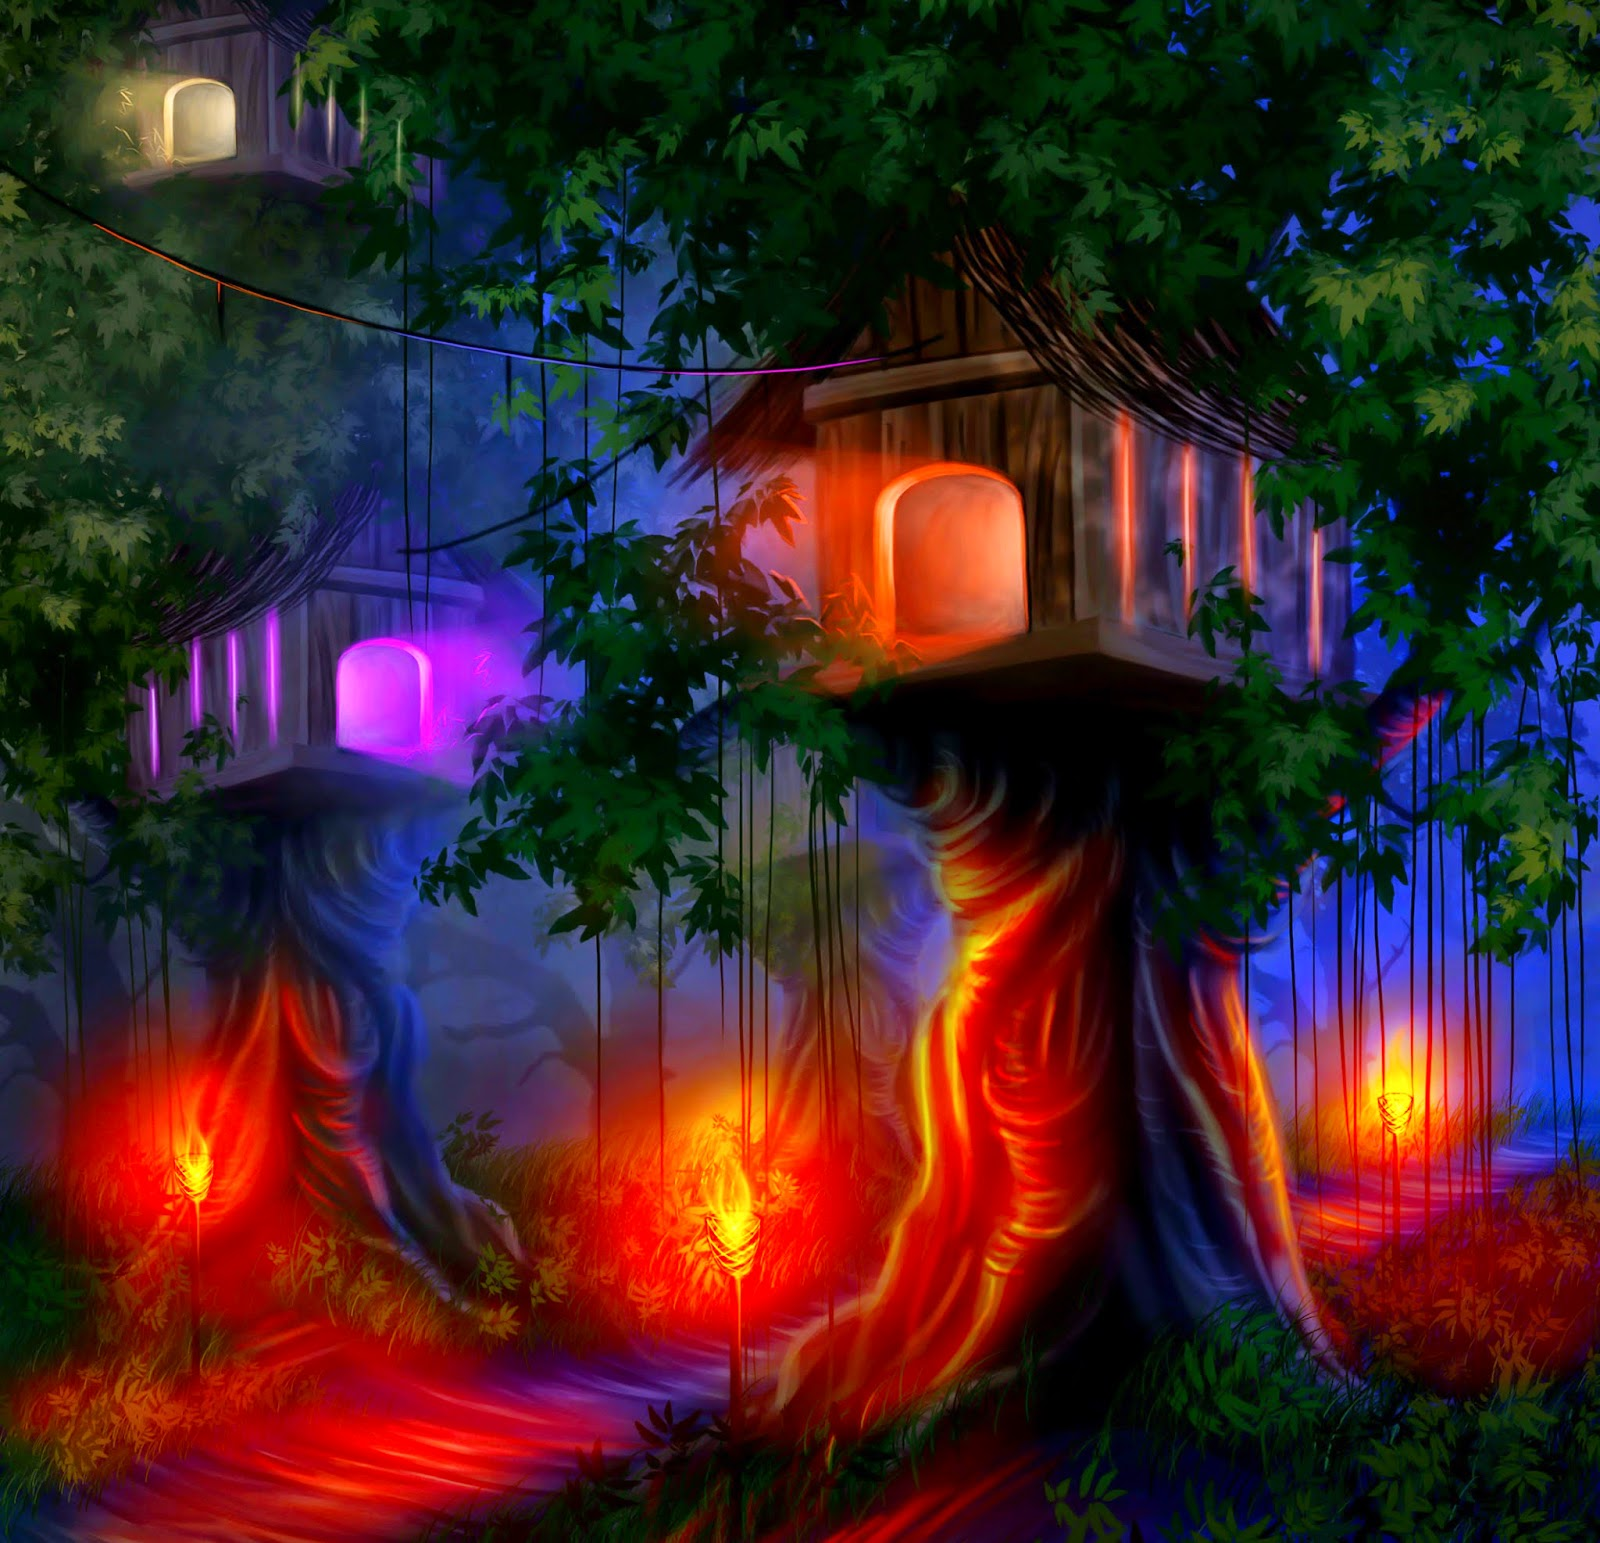 Glowing-tree-house-with-lights-at-night-graphics-image-2126x2050.jpg